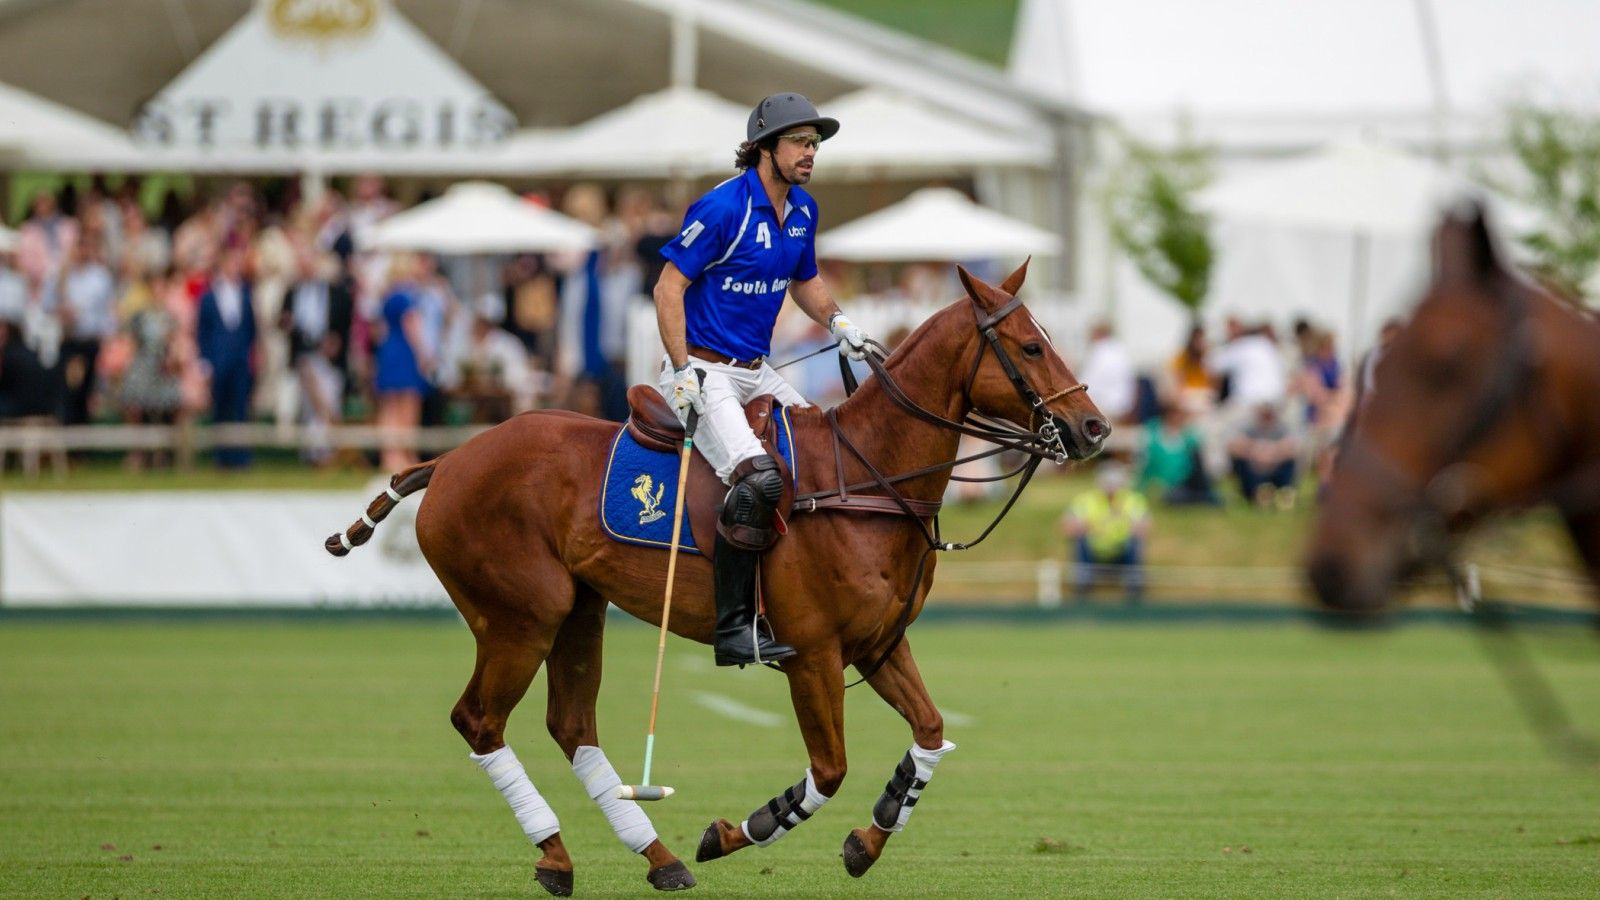 Polo | The St. Regis New York